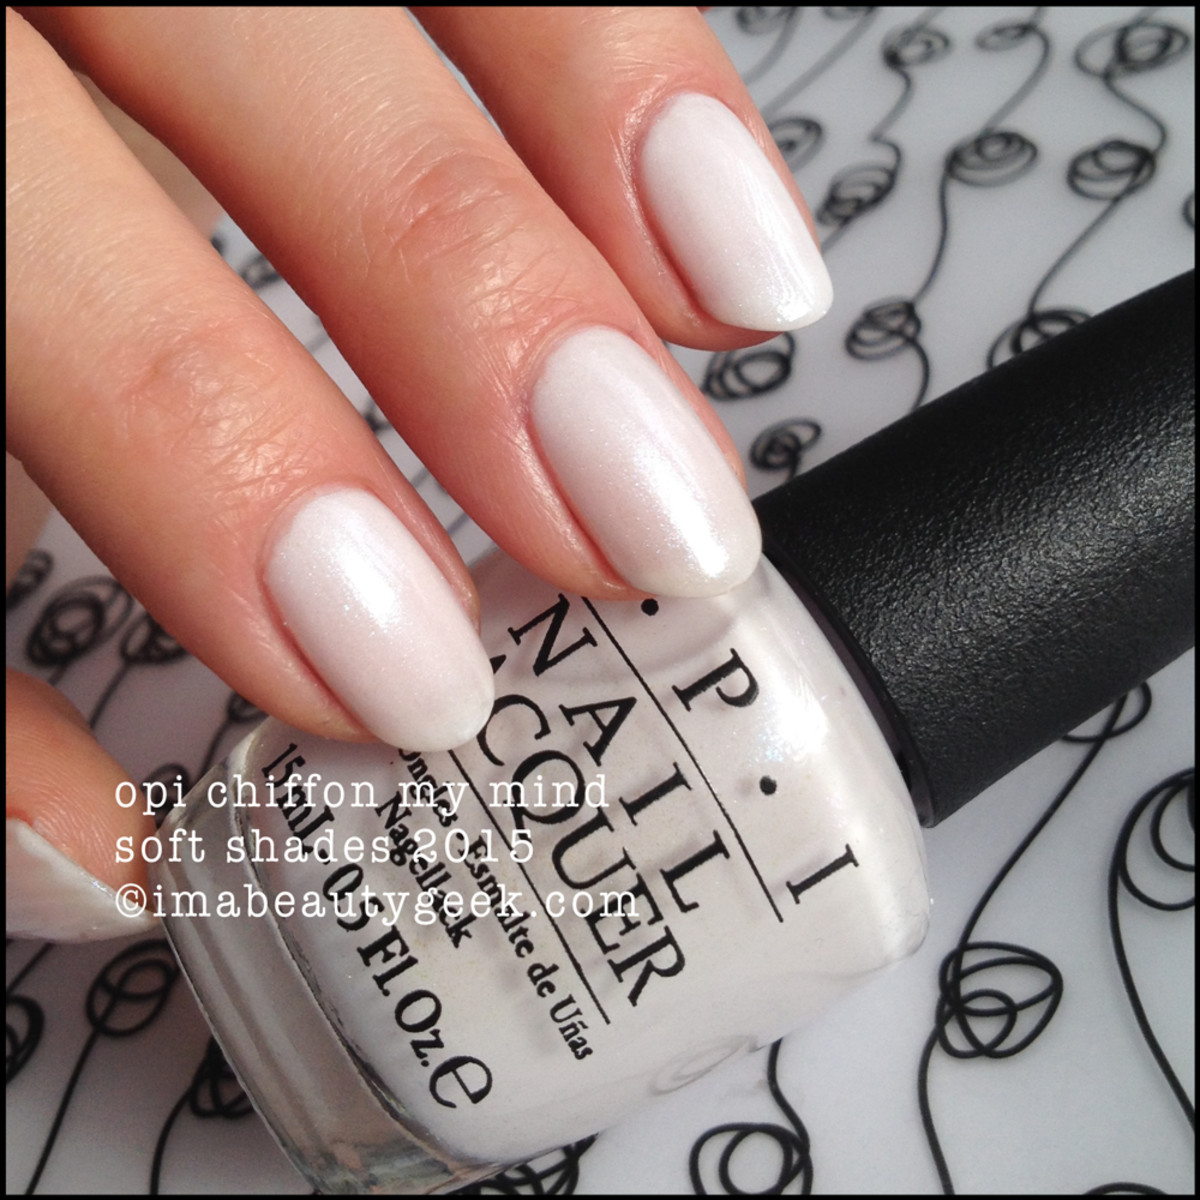 OPI Chiffon My Mind OPI Soft Shades 2015